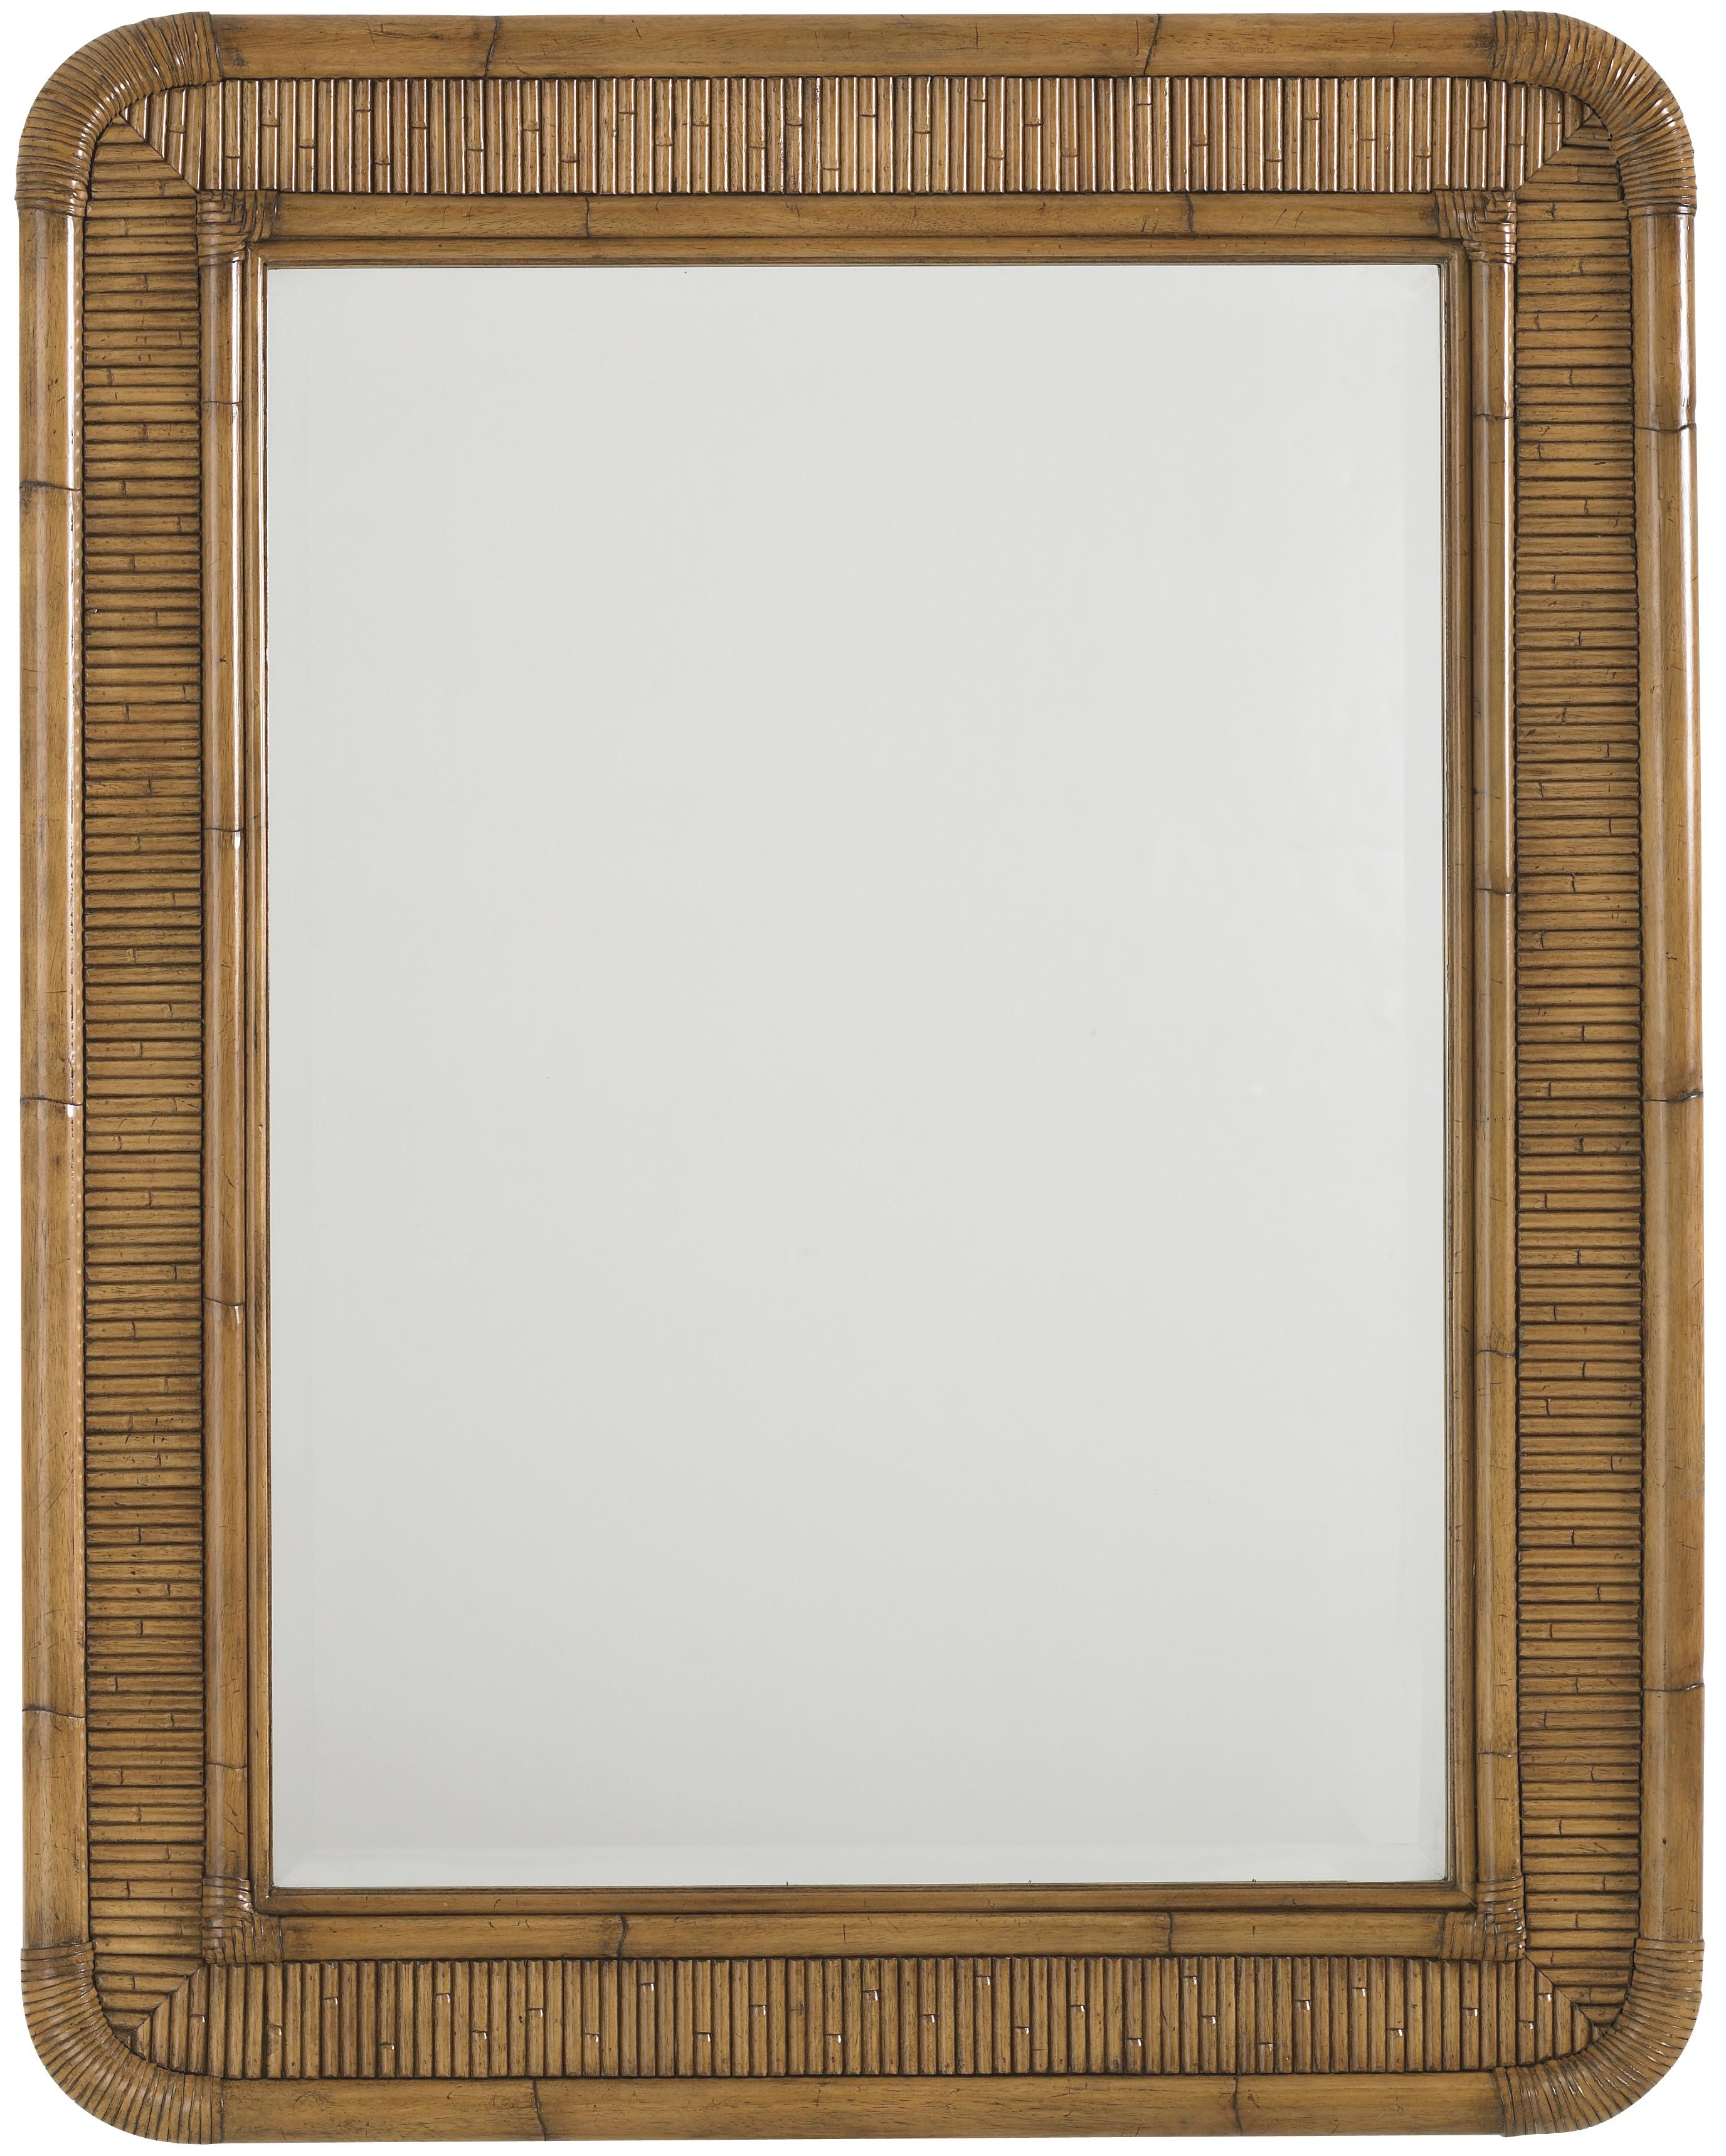 Tommy Bahama Home Beach House Osprey Mirror - Item Number: 540-205